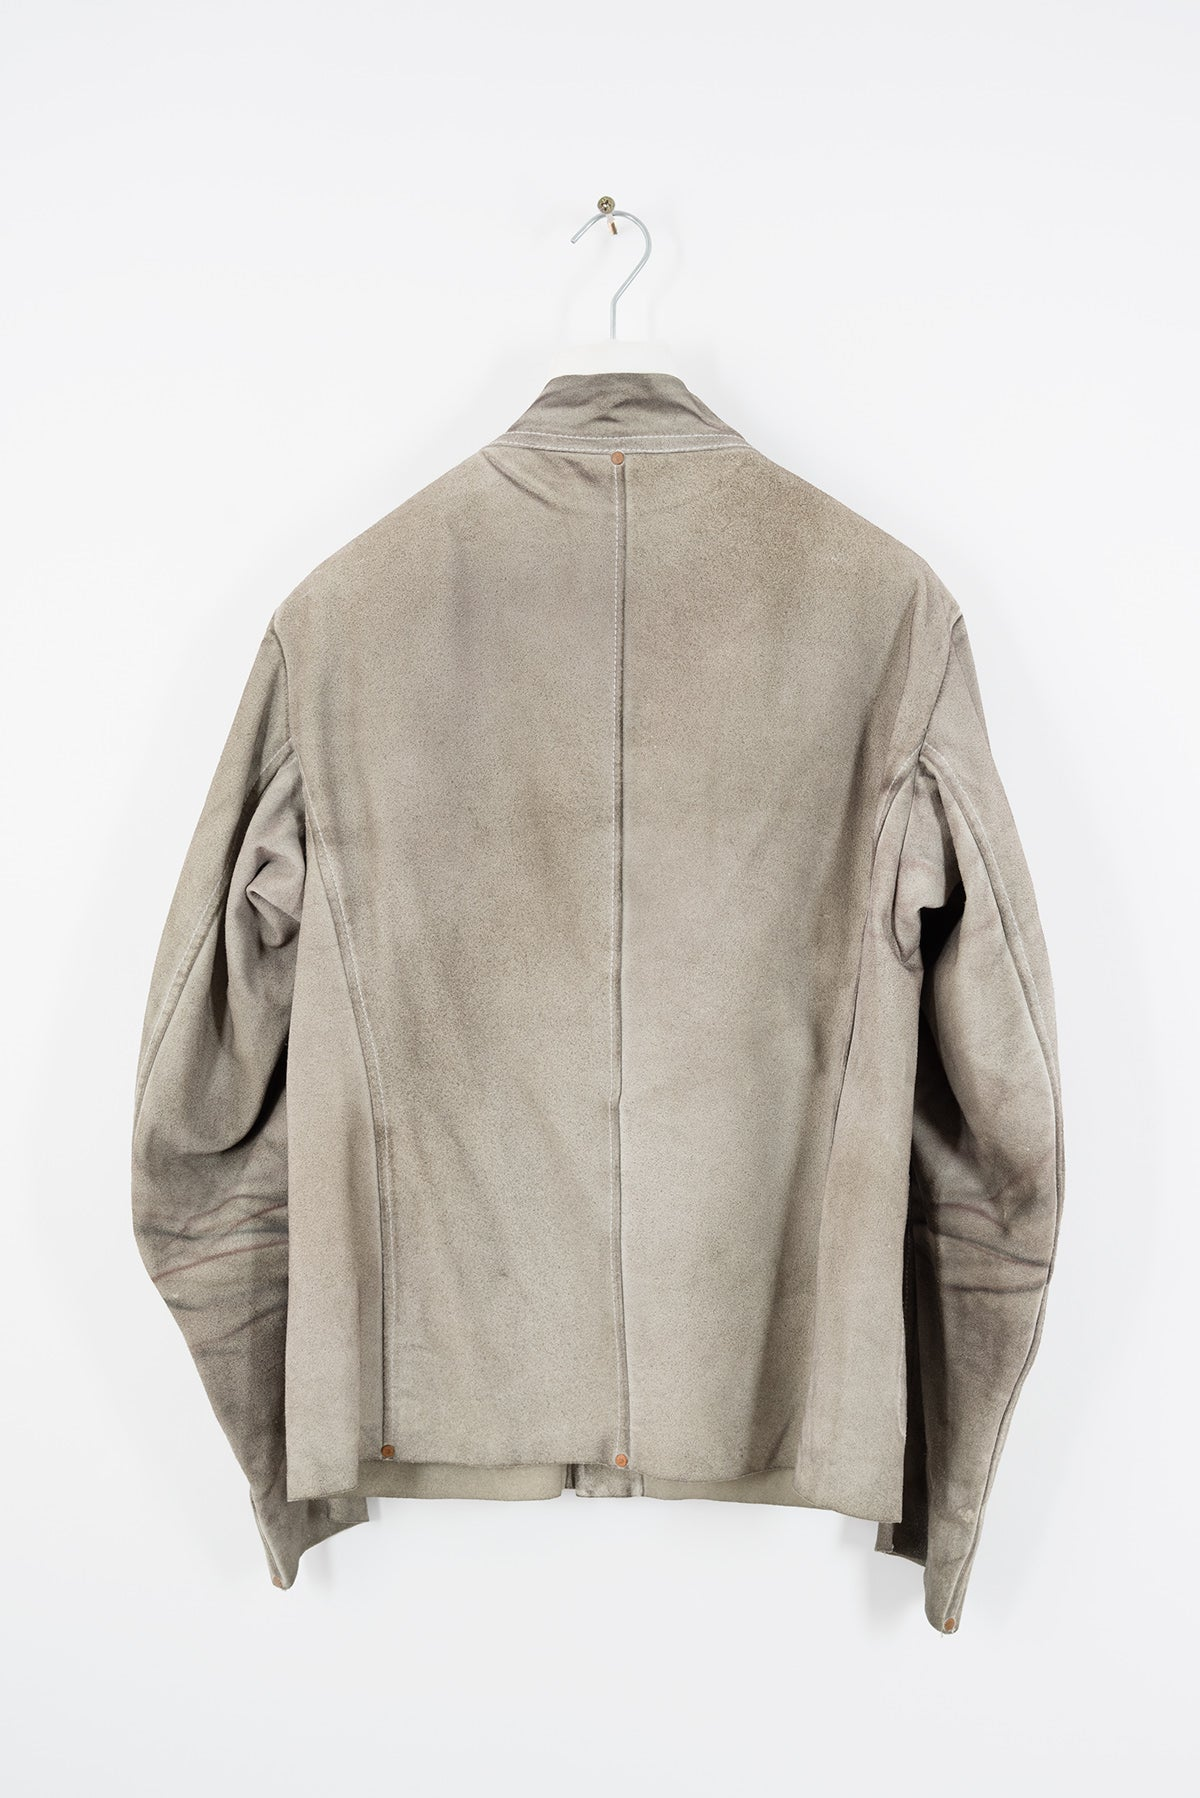 2003 S/S NATURAL COLOURED AGED SUEDE ANATOMIC JACKET